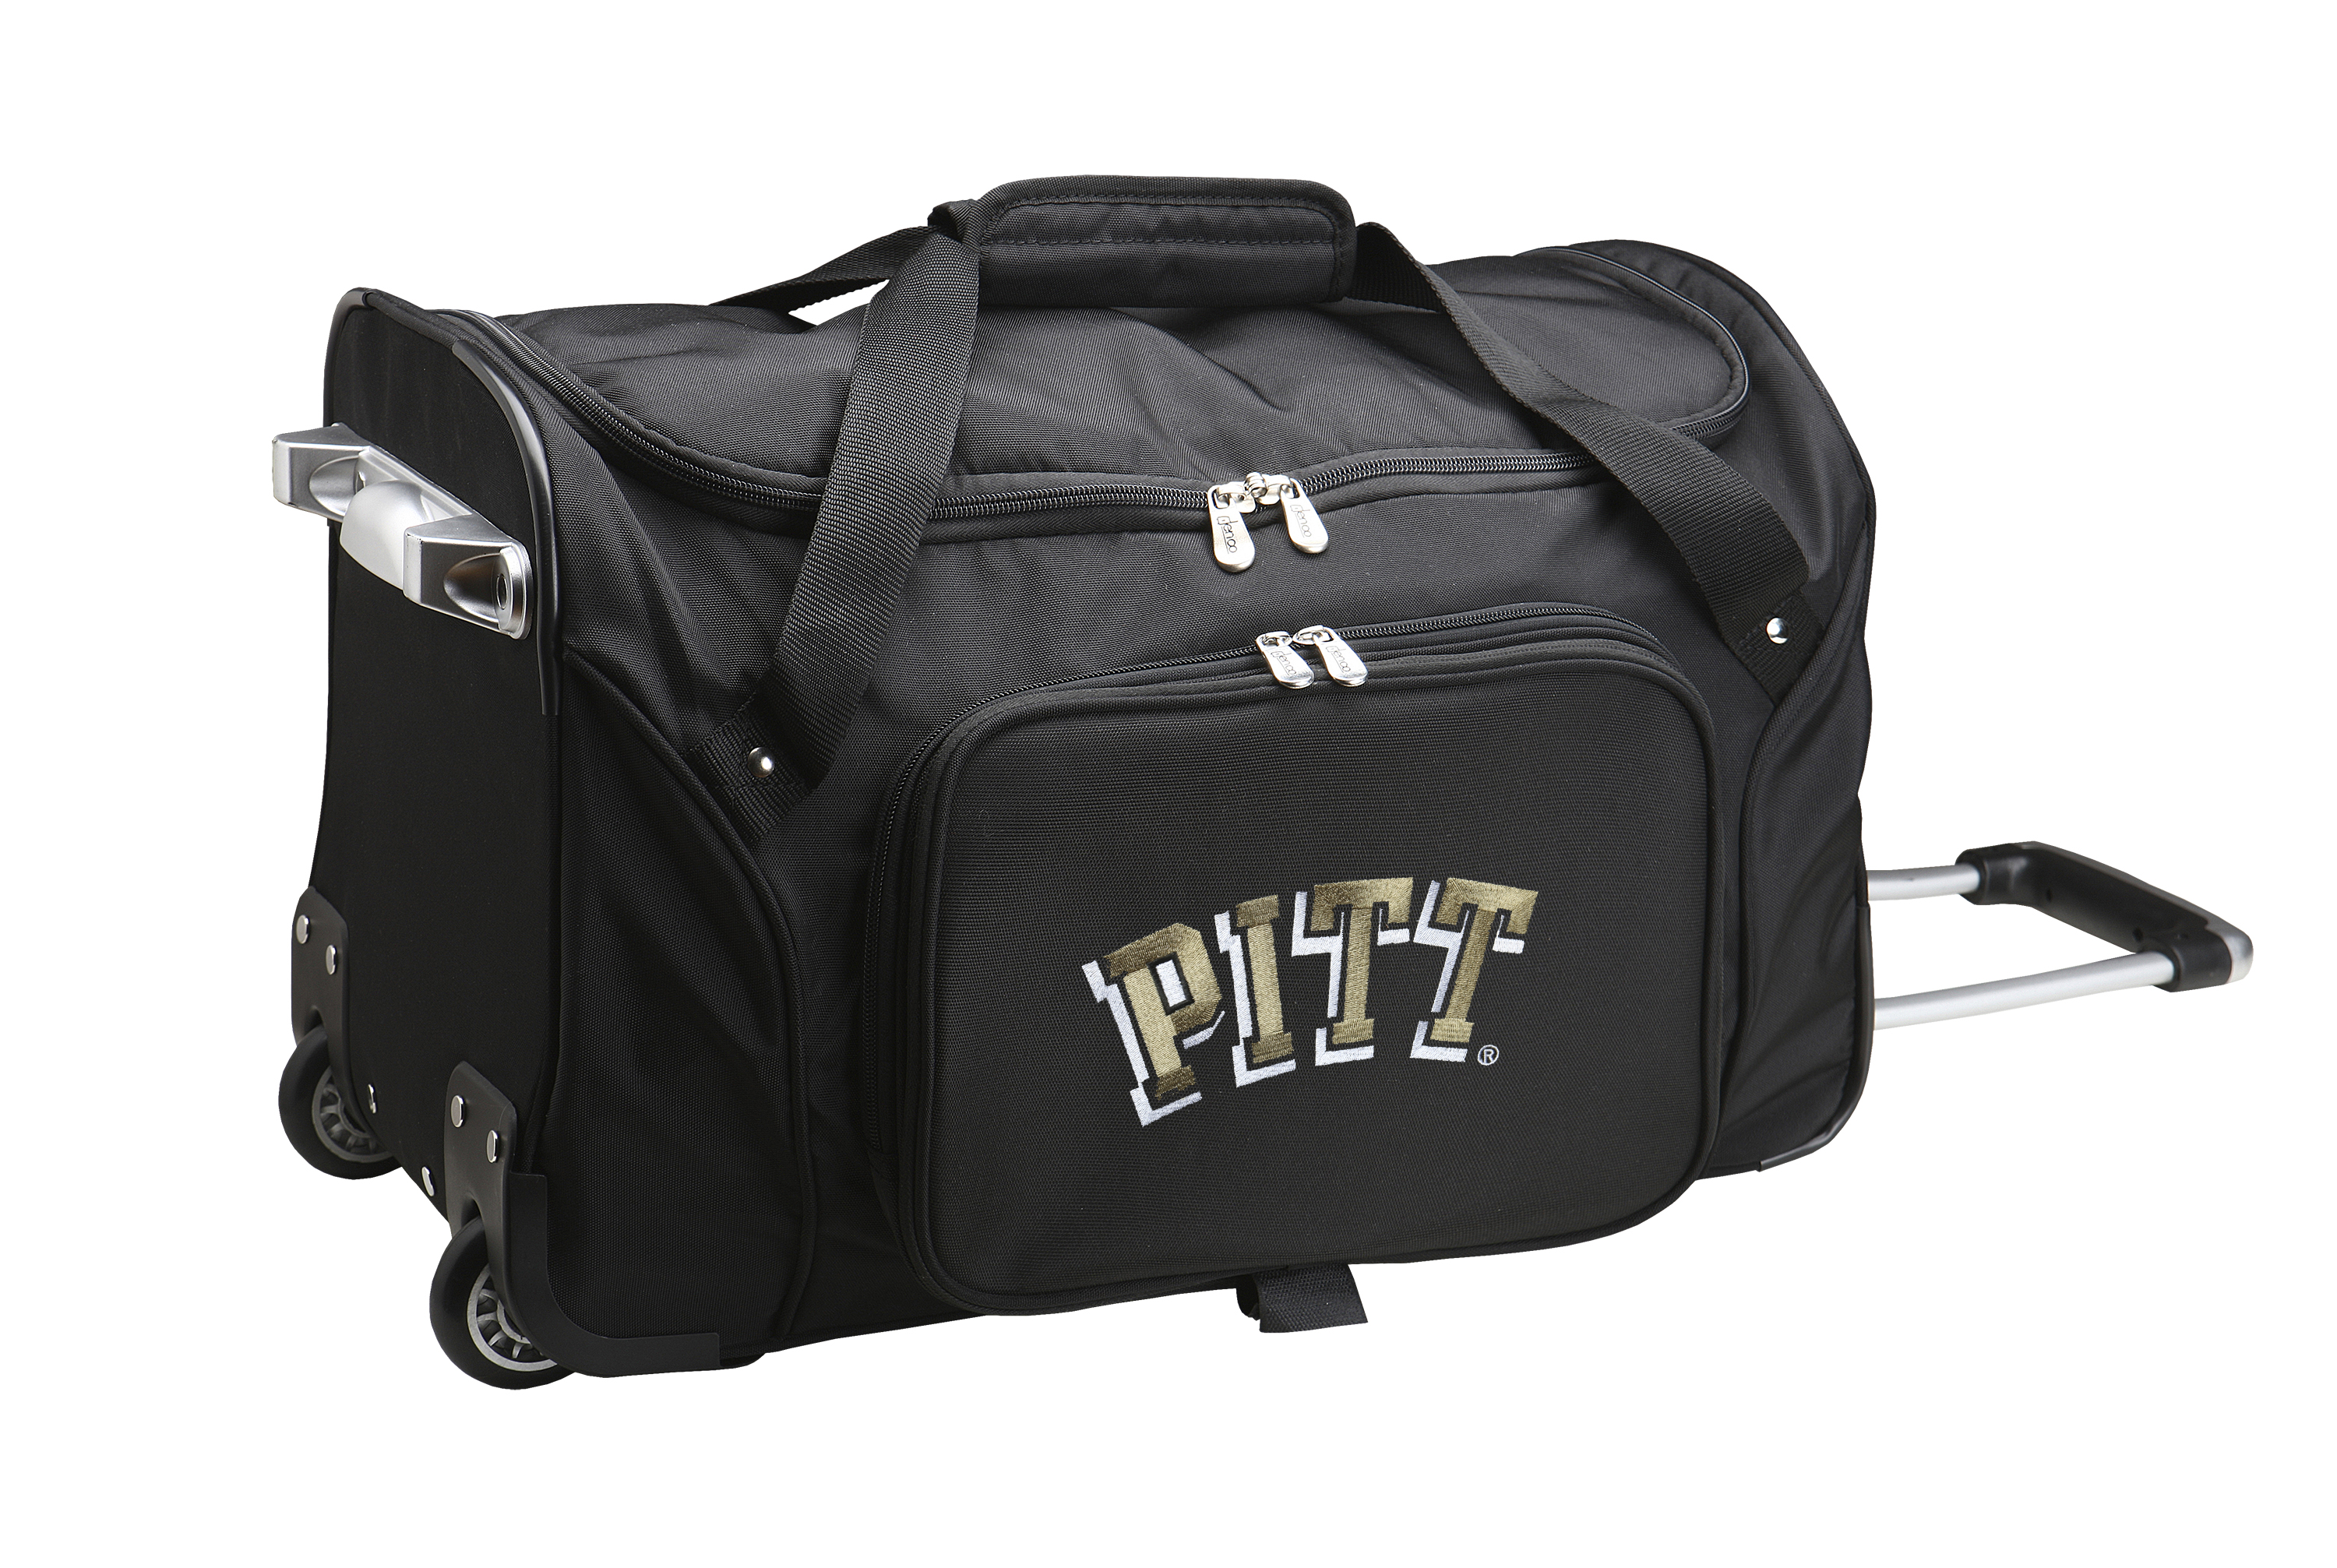 Denco Sports Luggage Rolling Duffel Bag, Pittsburgh Panthers, Black